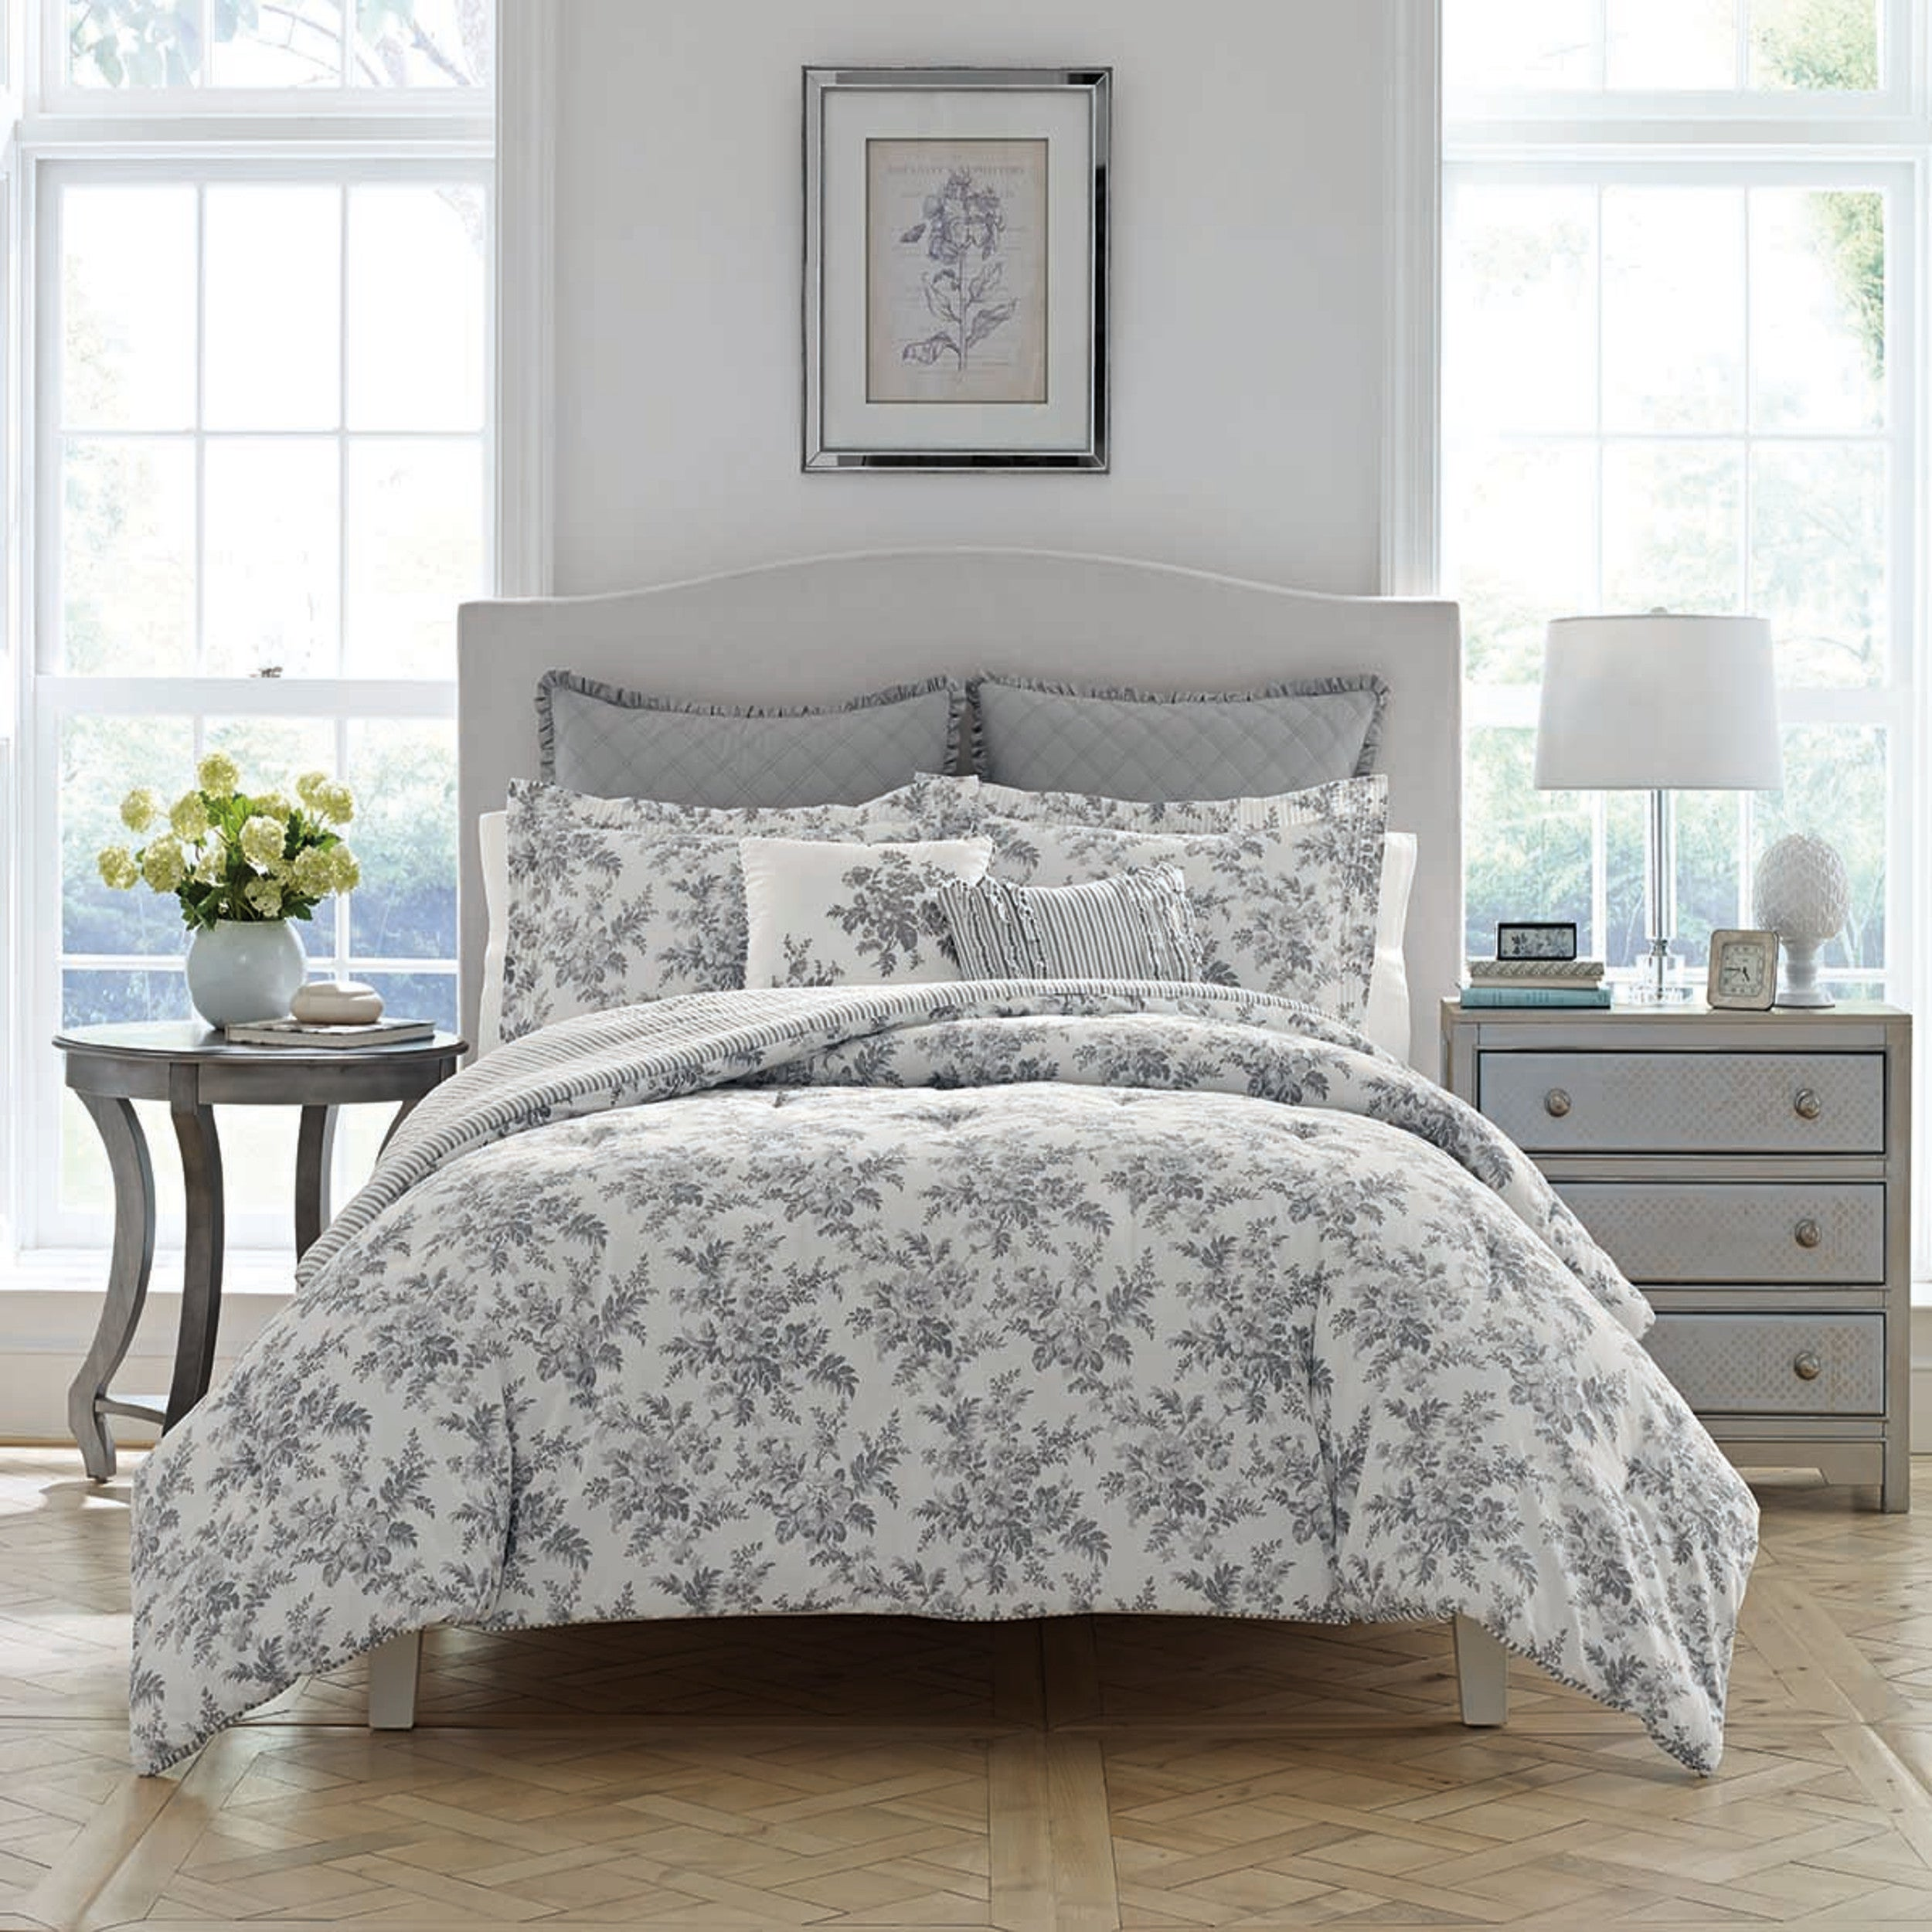 Download Laura Ashley Bedroom Ideas 2020 Images